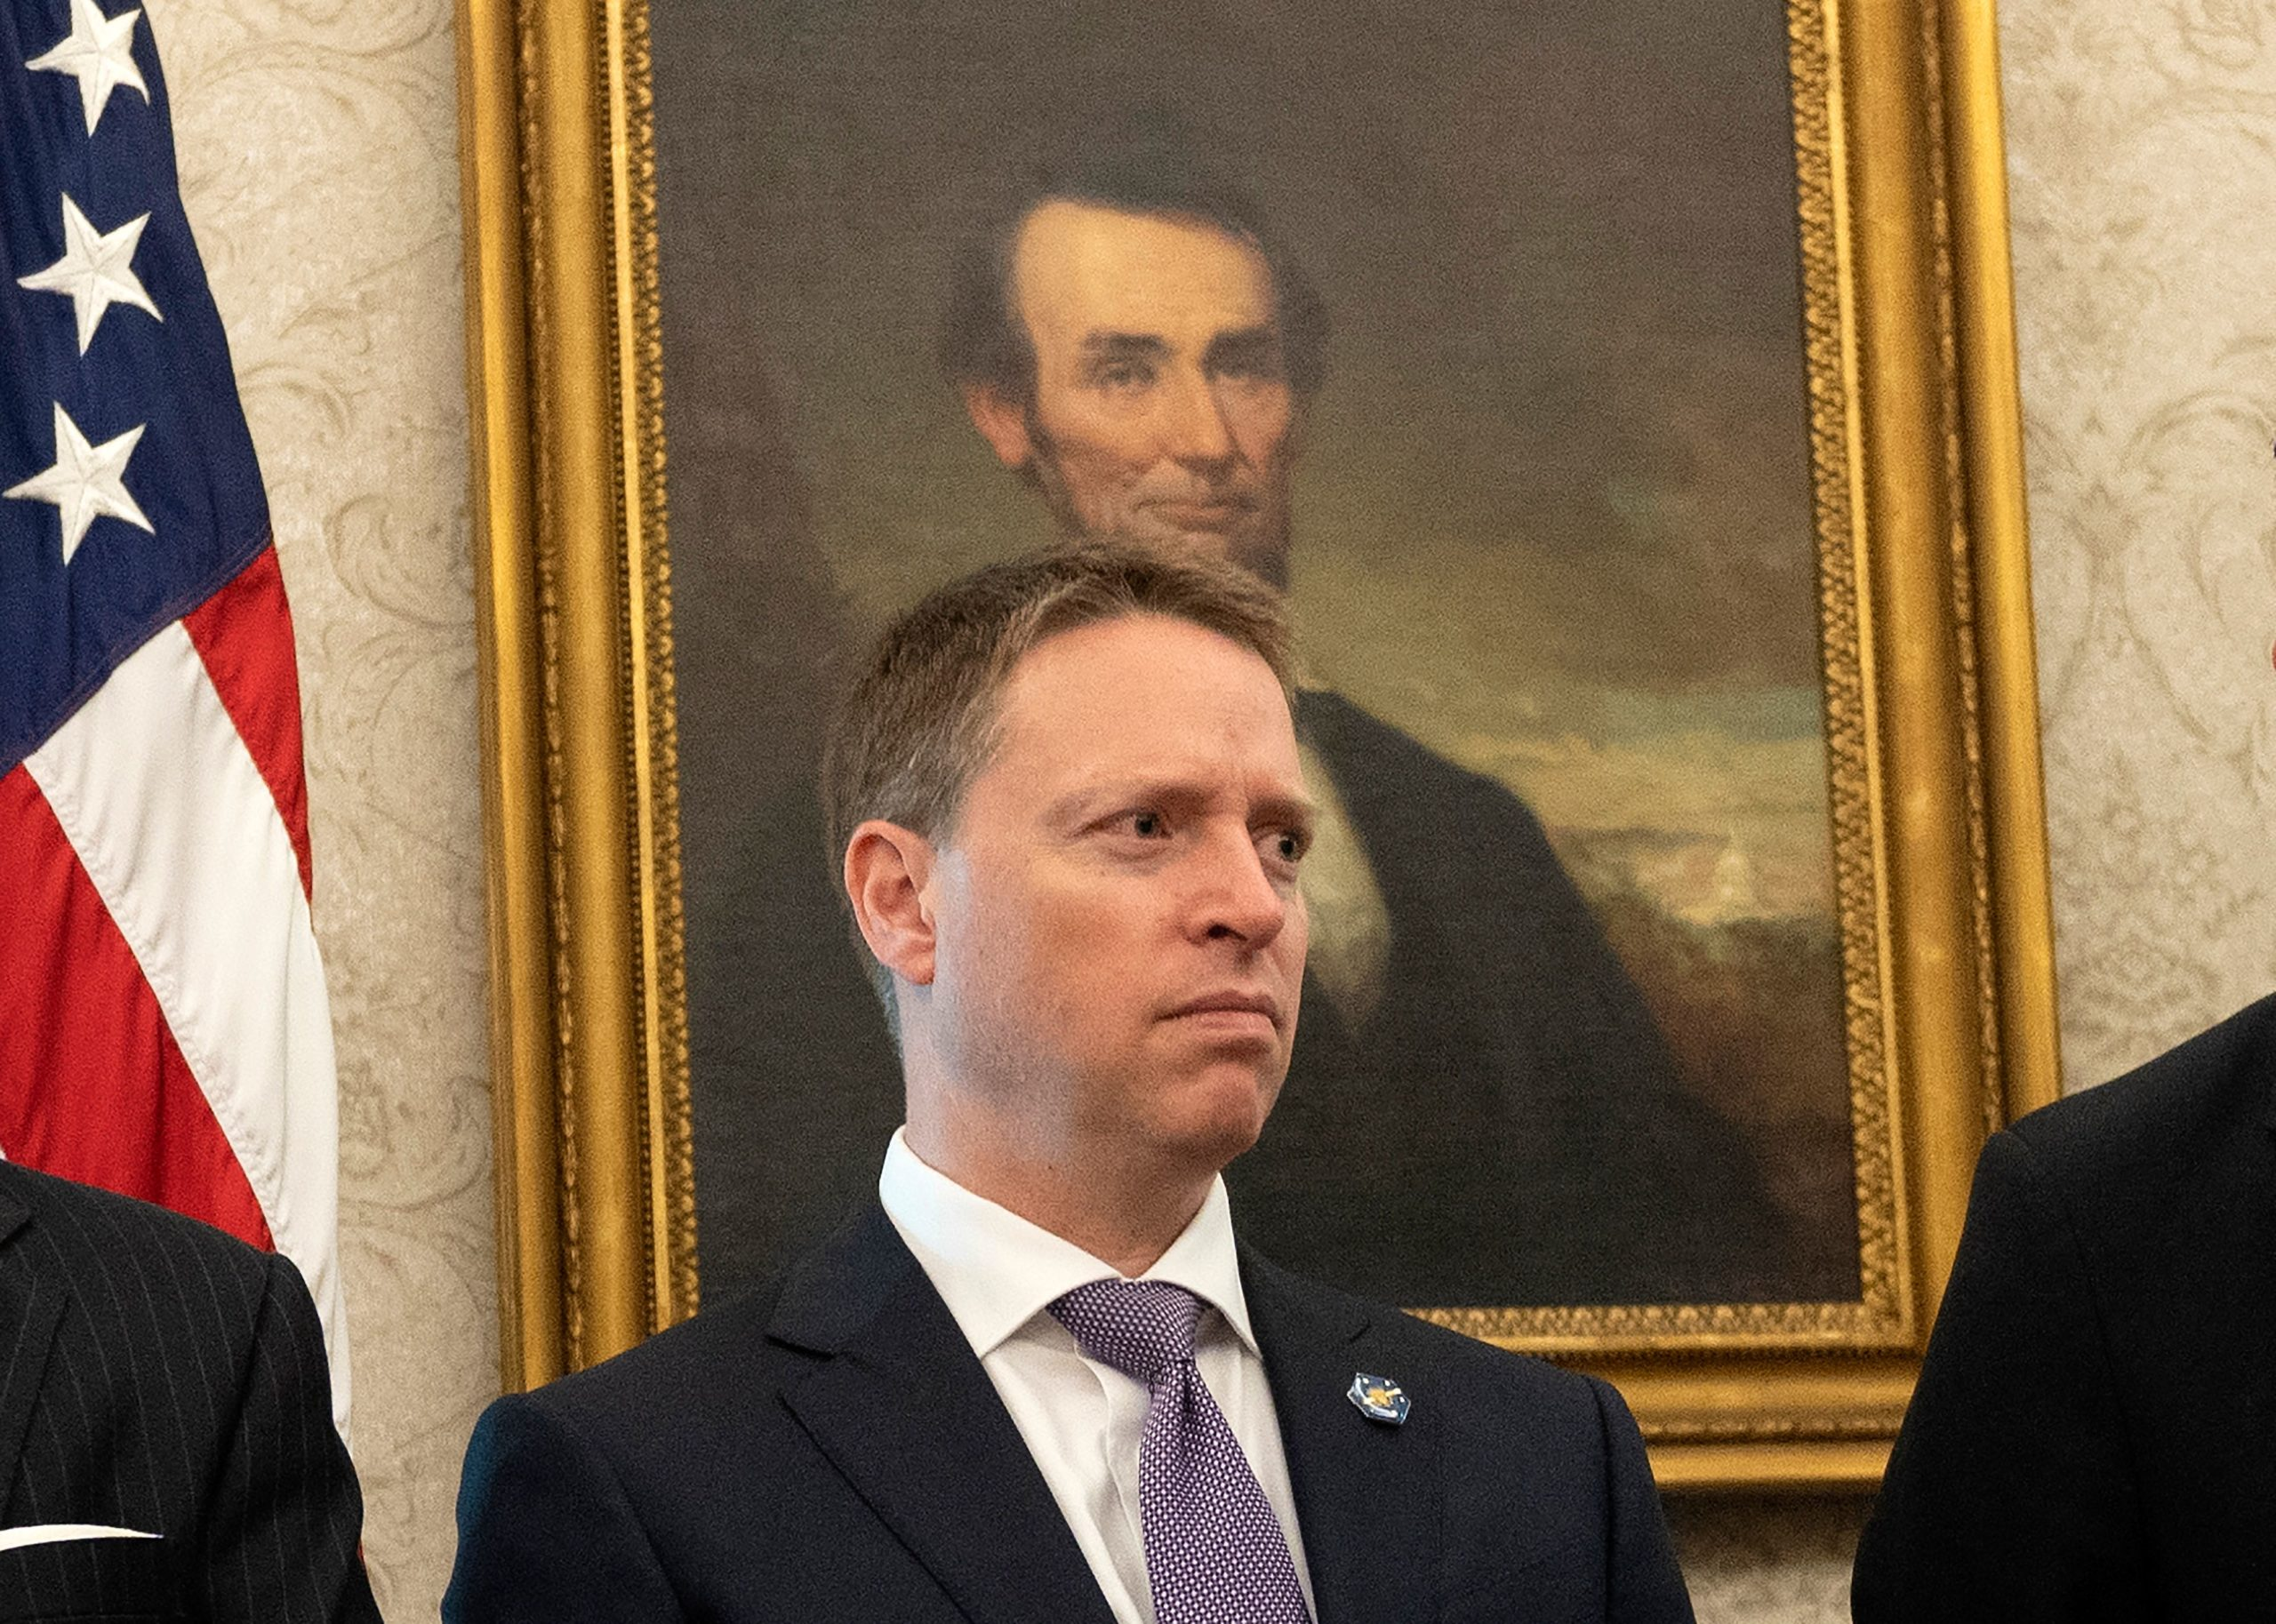 United States Deputy National Security Advisor Matthew Pottinger looks on as US President Donald Trump speaks in the Oval Office of the White House in Washington, DC, on September 11, 2020. (Photo by ANDREW CABALLERO-REYNOLDS/AFP via Getty Images)